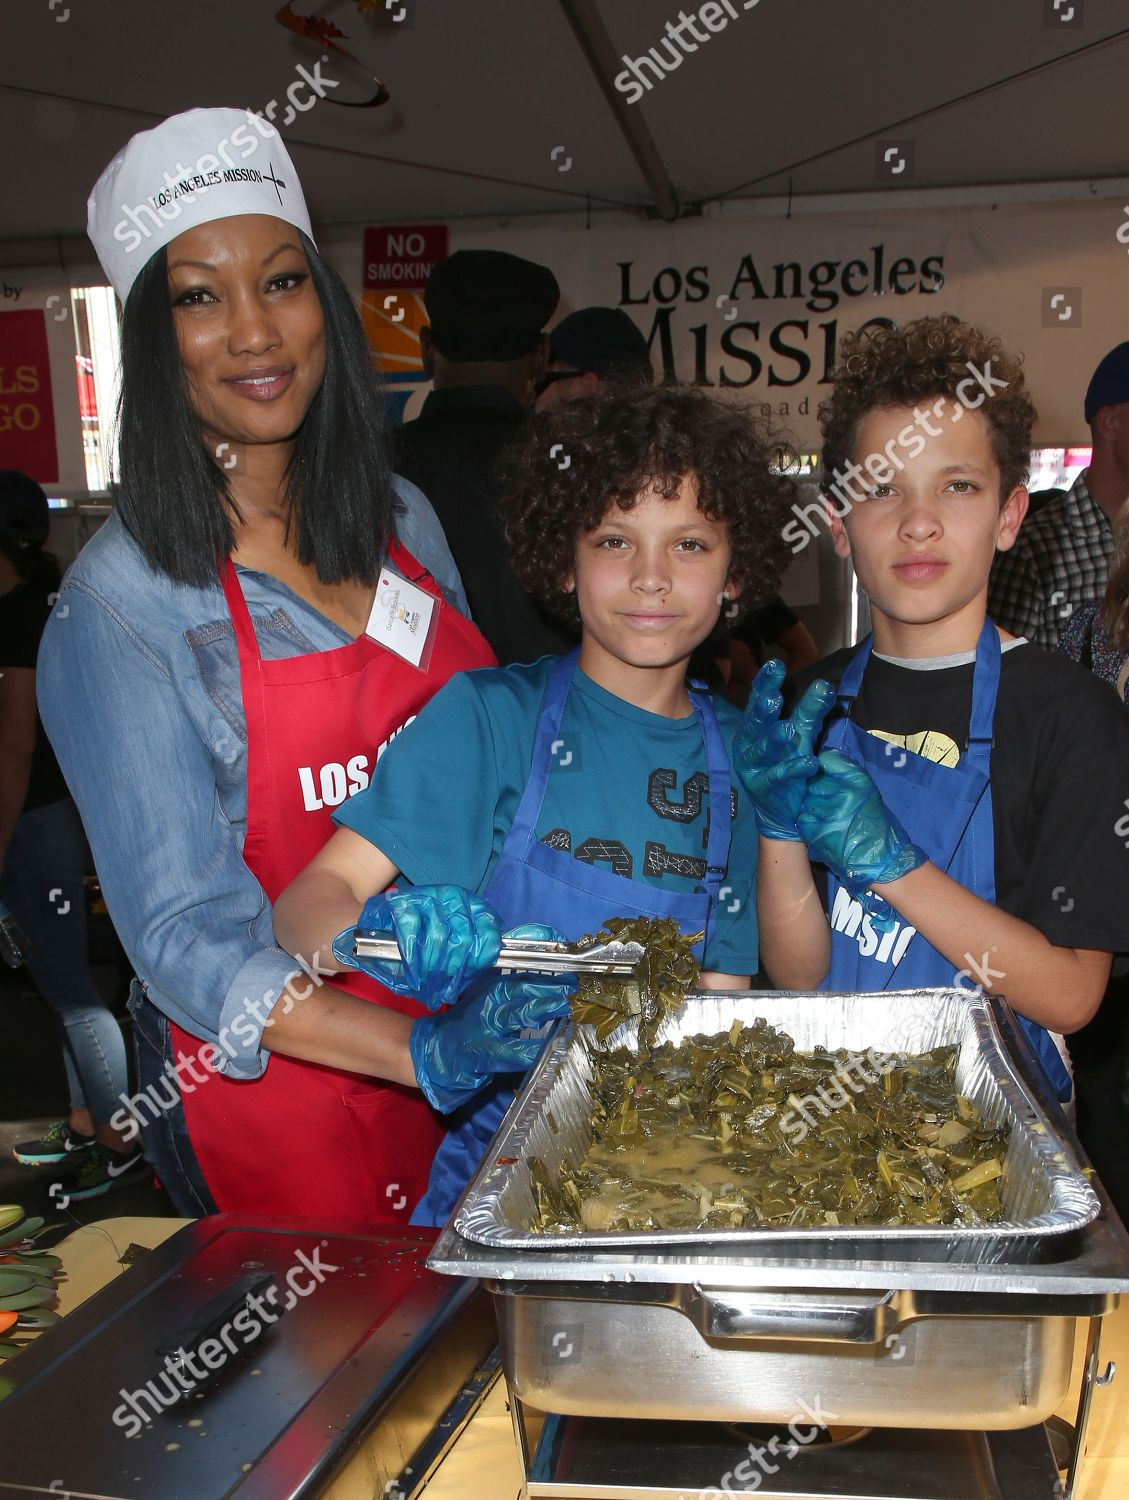 Stock photo of Los Angeles Mission Annual Thanksgiving for the Homeless, Los Angeles, USA - 22 Nov 2017